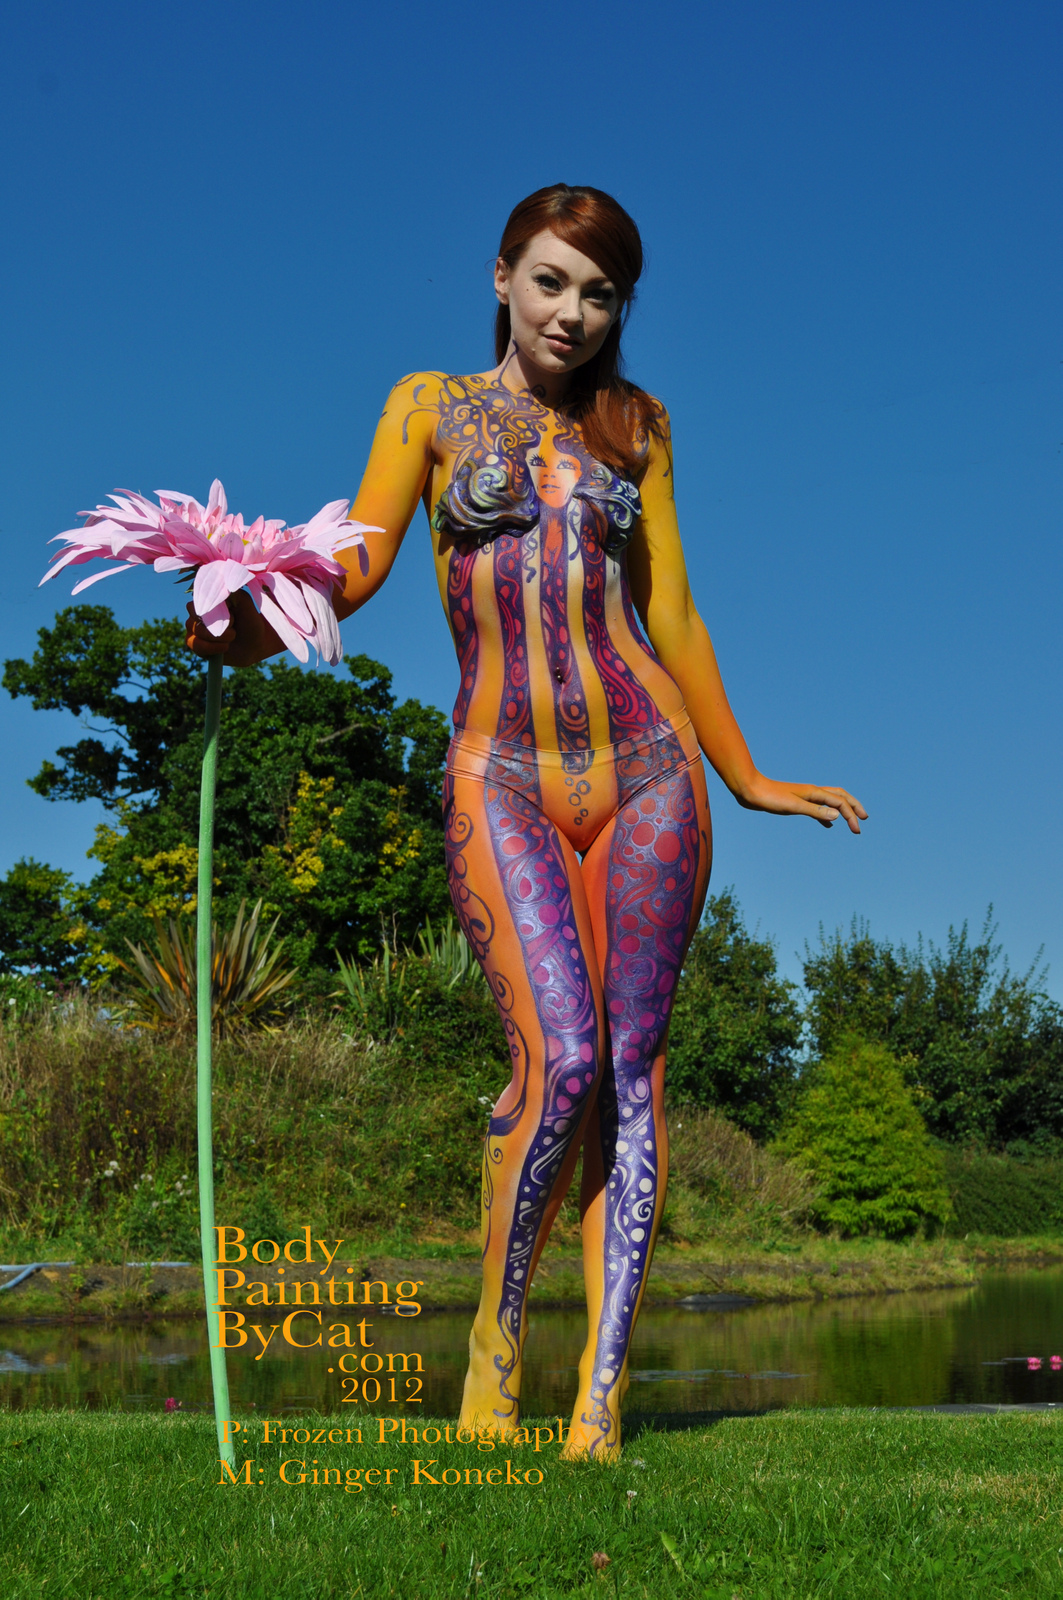 Hey Jude Psychedelia Body Paint Body Painting By Cat